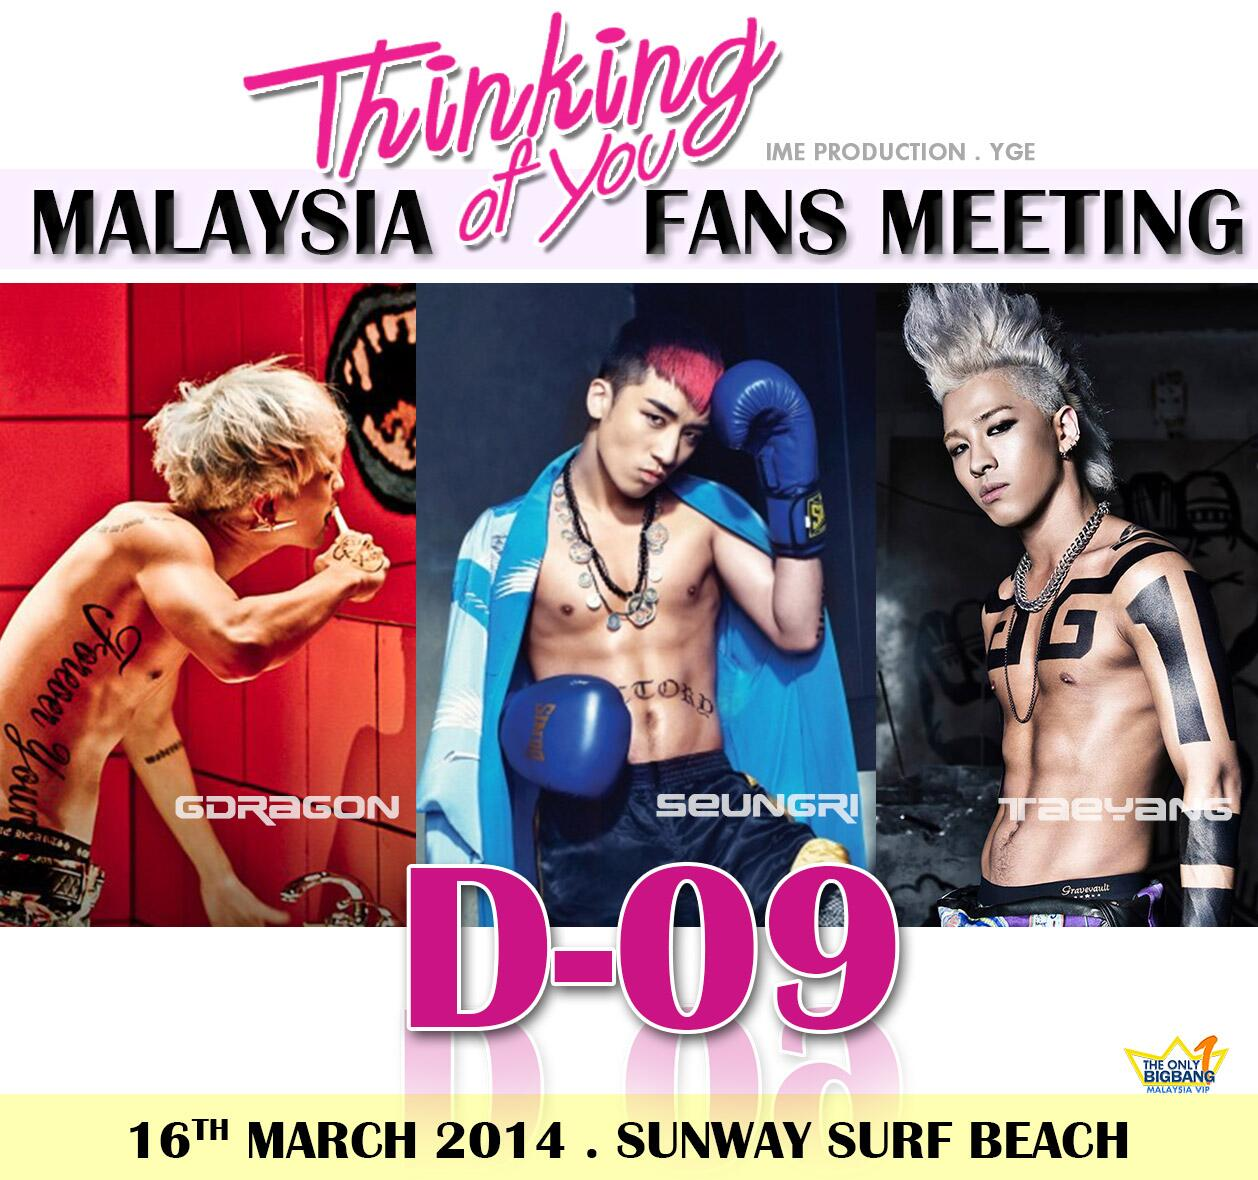 D-9 to #Malaysia Fans Meeting with #GDRAGON #TAEYANG #SEUNGRI   Zone D (RM 200) &Zone B (RM 500) sold out !! http://t.co/WeeVwe0kAC